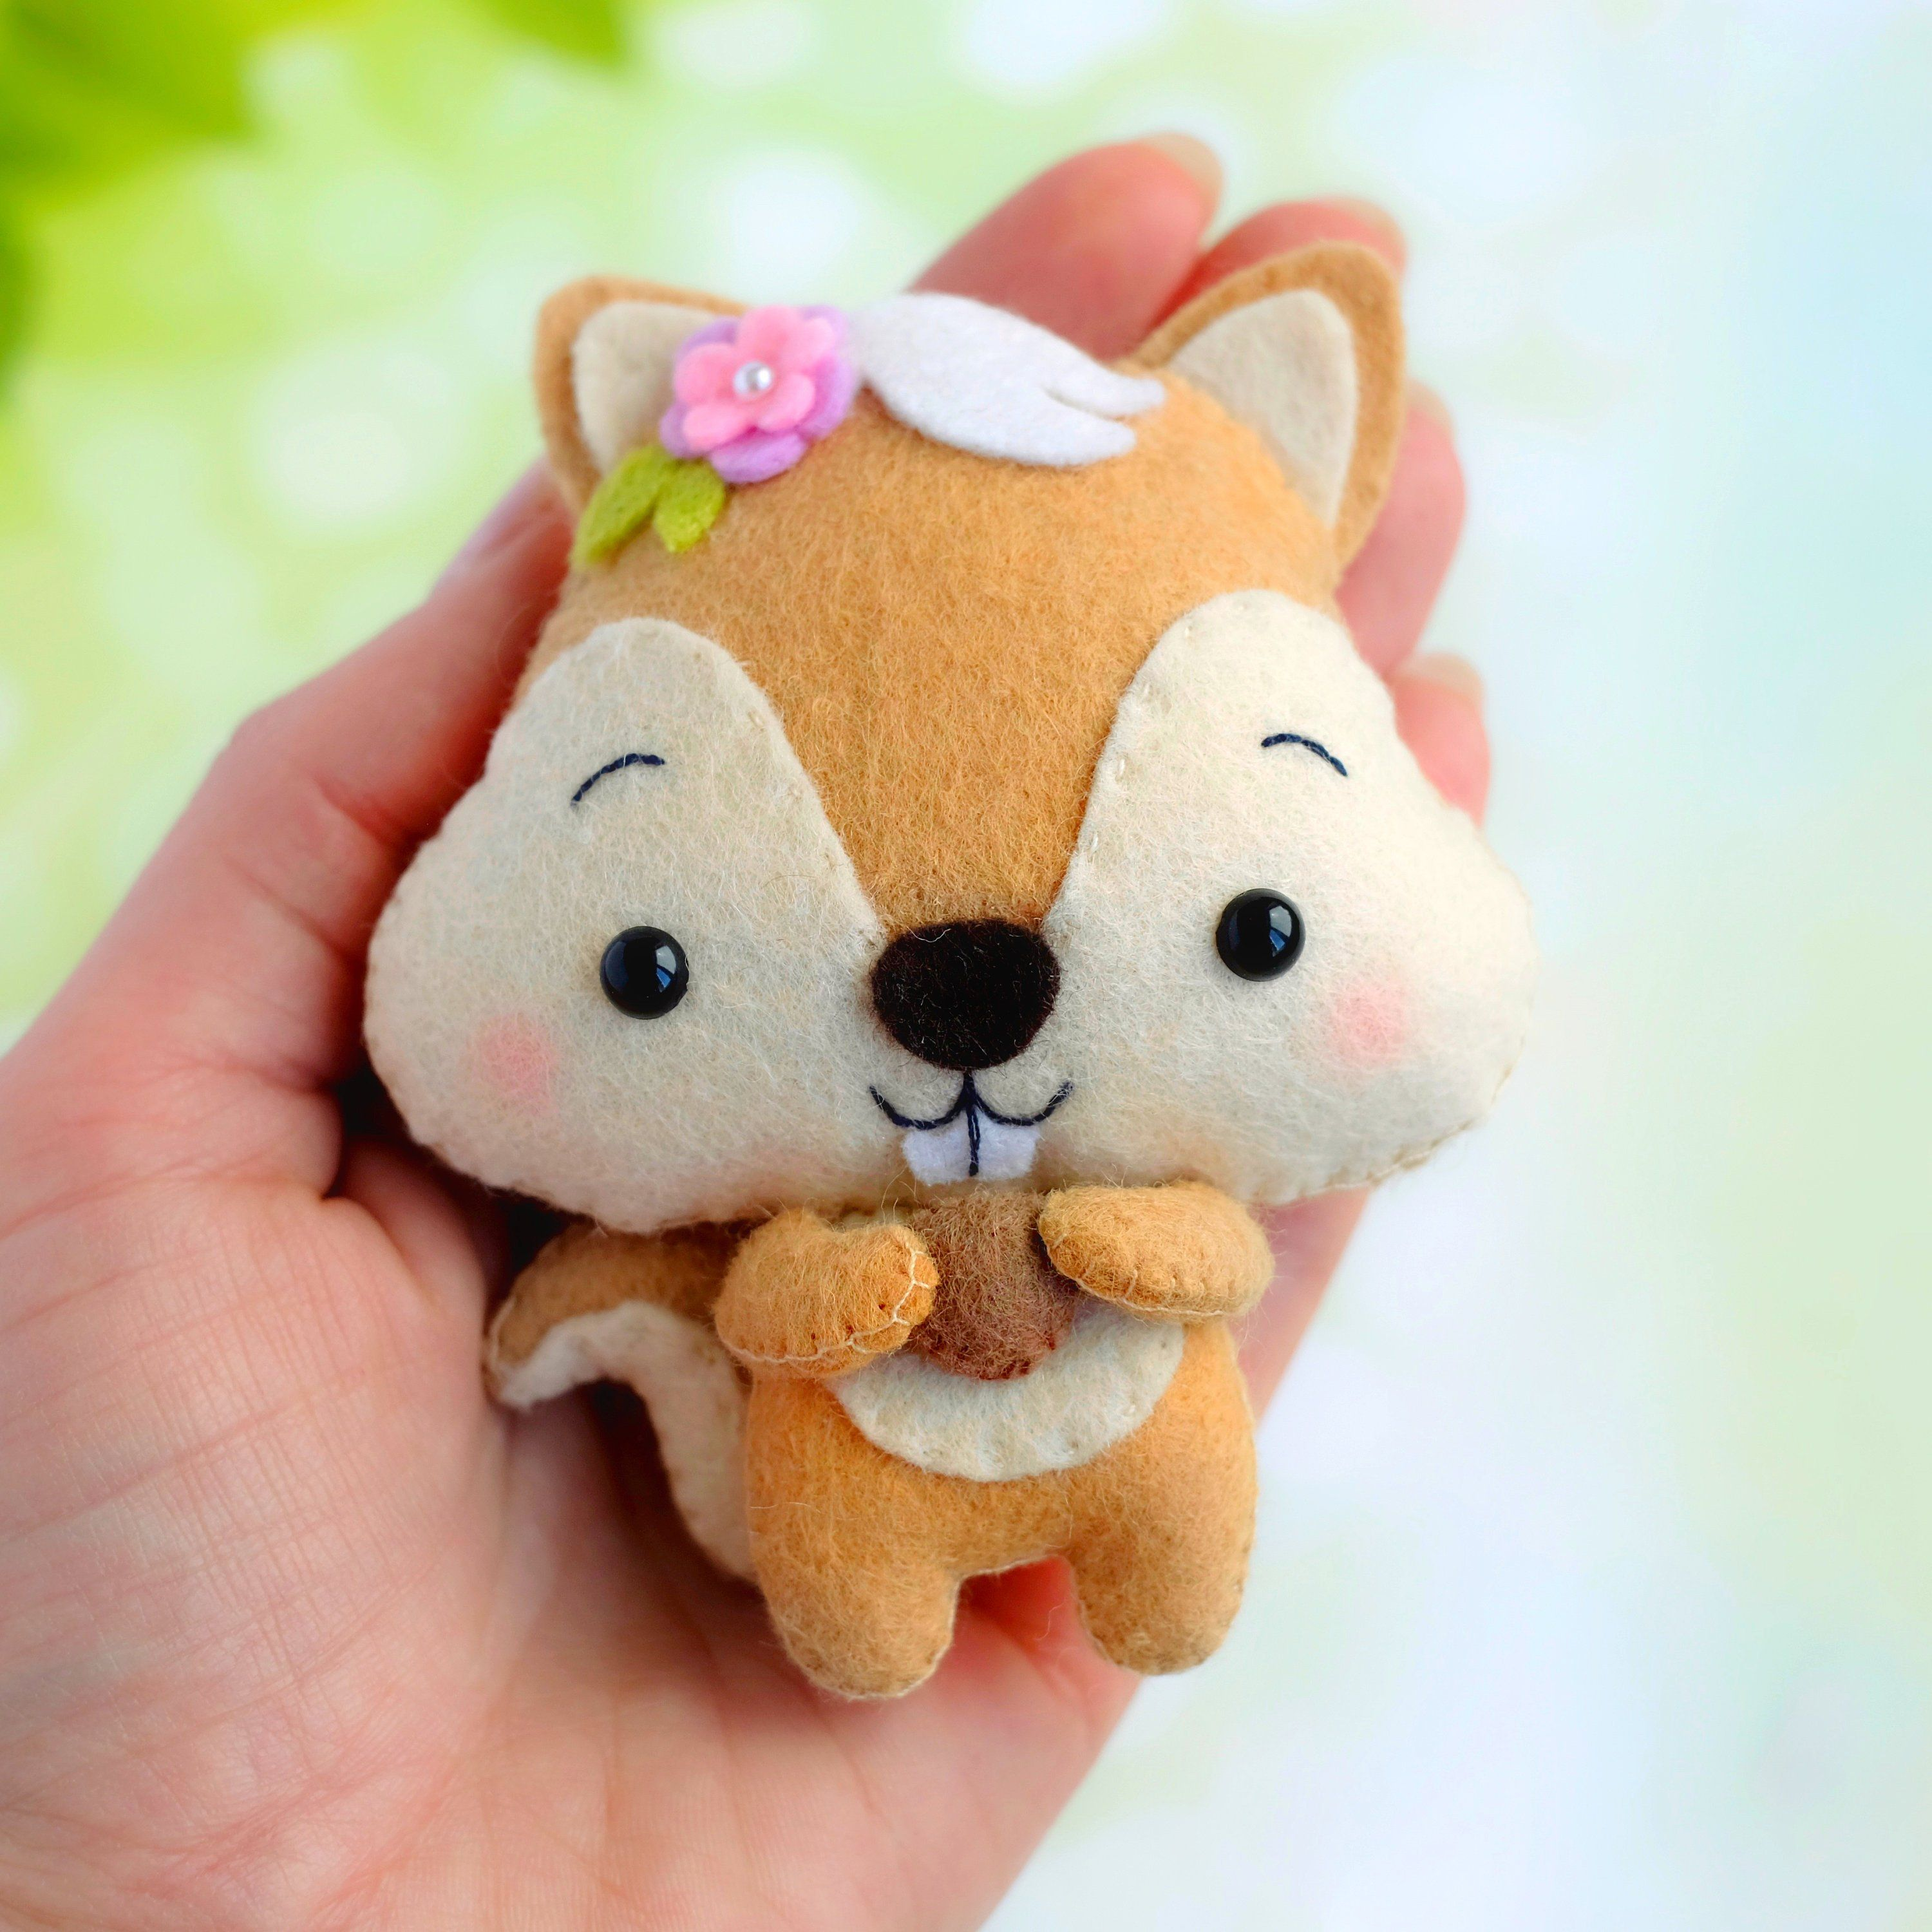 Squirrel Pdf Pattern Felt Woodland Animal Plush Toy Sewing Etsy In 2021 Felt Toys Patterns Sewing Projects For Beginners Diy Sewing Gifts [ 3000 x 3000 Pixel ]